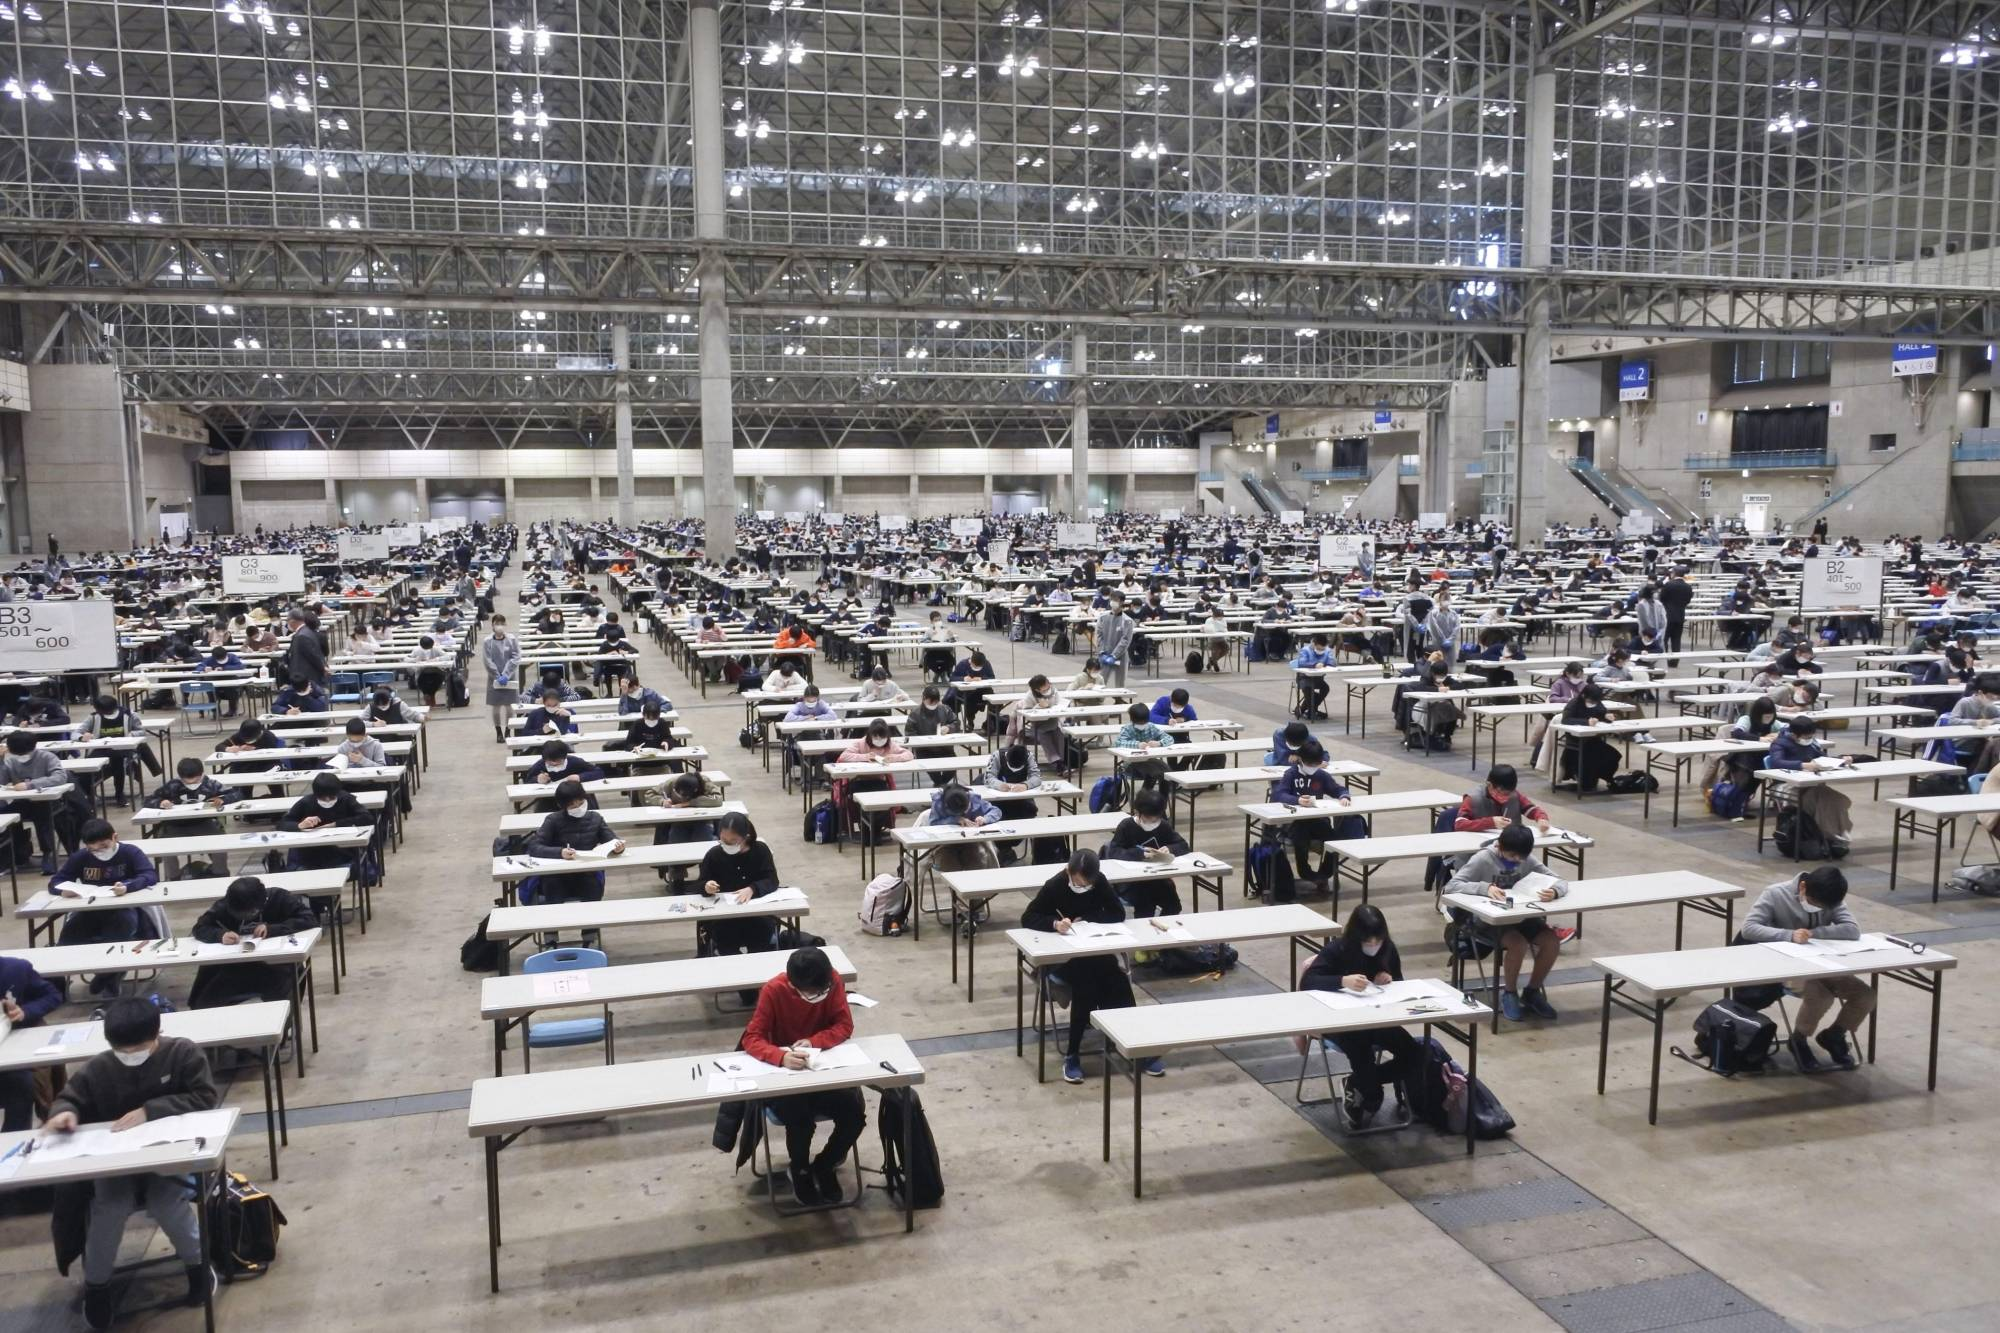 An entrance exam for Ichikawa Junior High School at Makuhari Messe in Chiba on Jan. 20. | ICHIKAWA JUNIOR HIGH SCHOOL / VIA KYODO